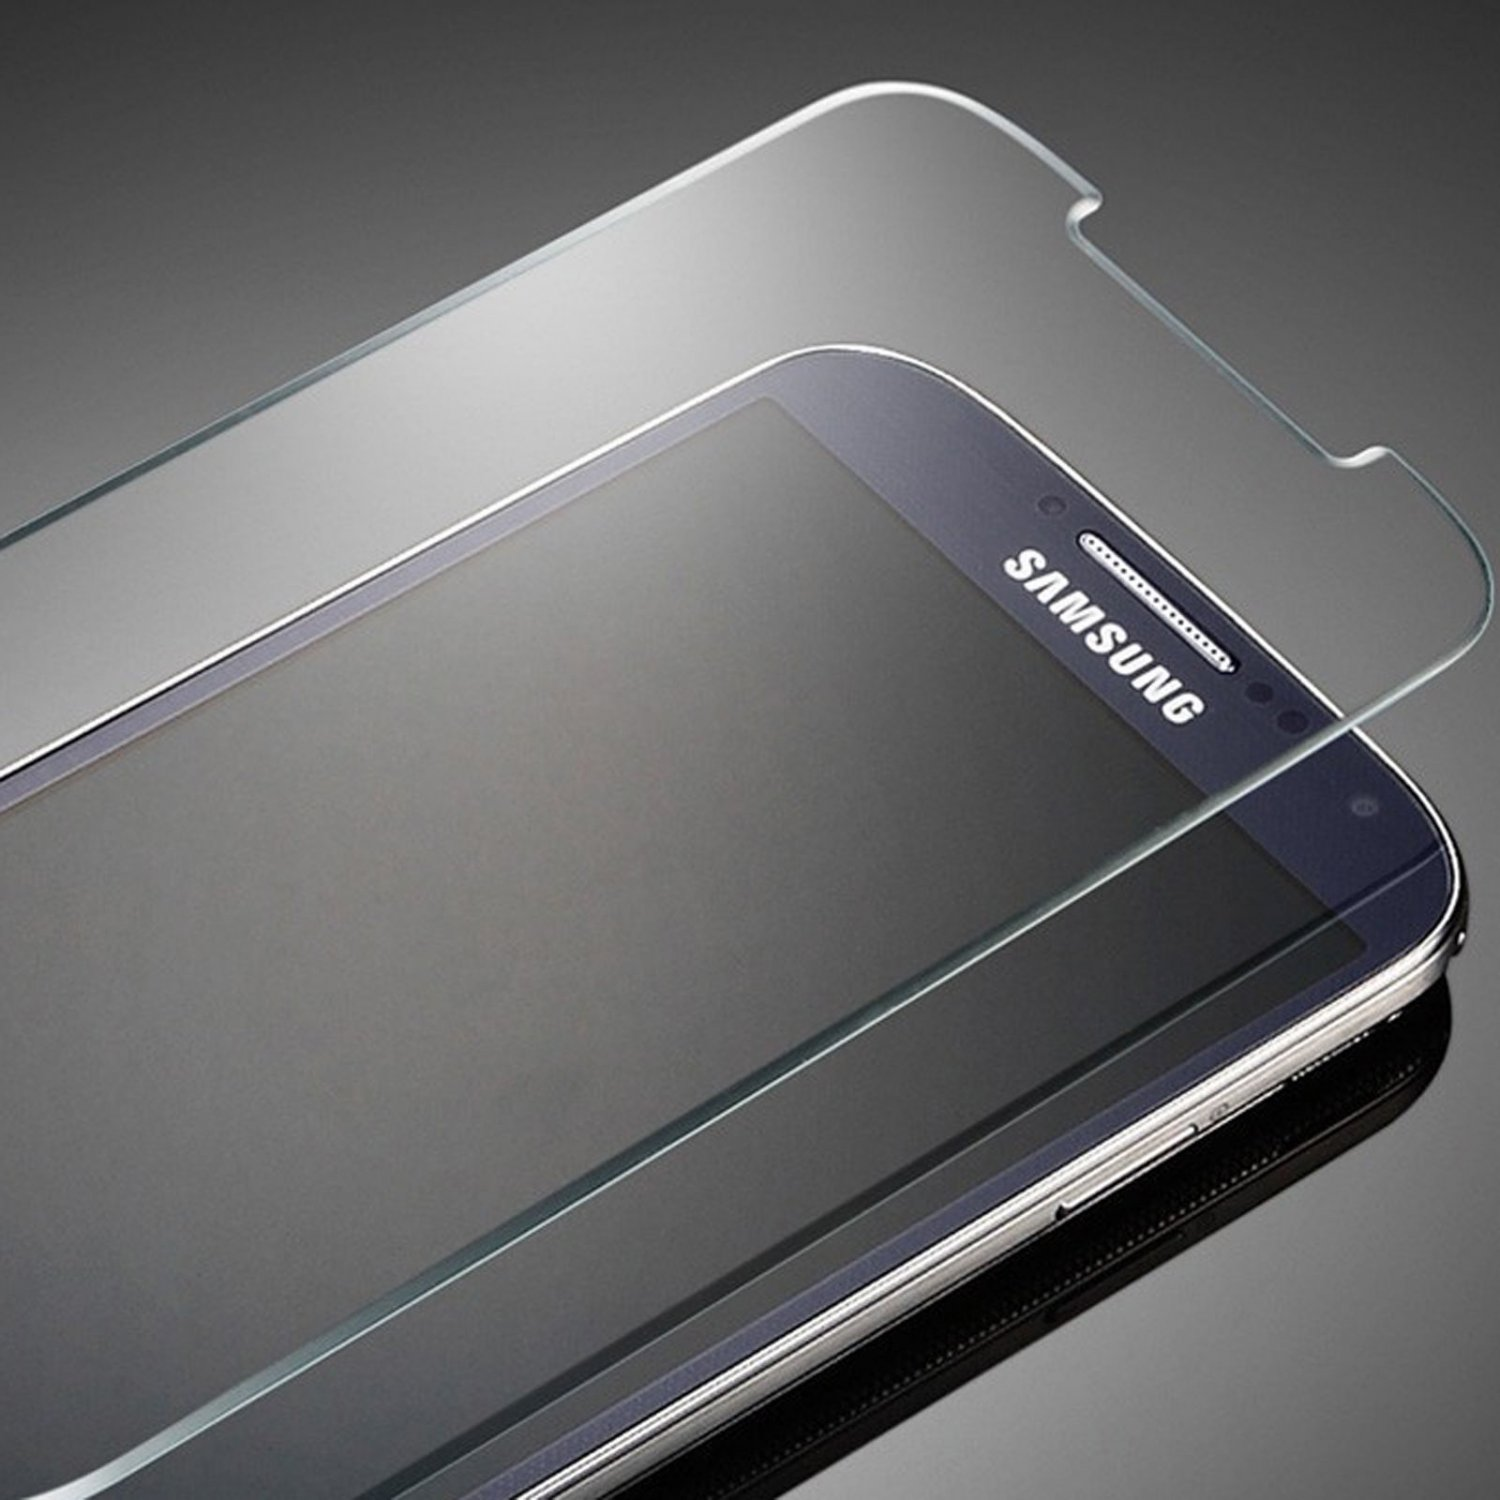 1 Tempered Glass Screen Protector For Samsung Galaxy Avant G386 Phone